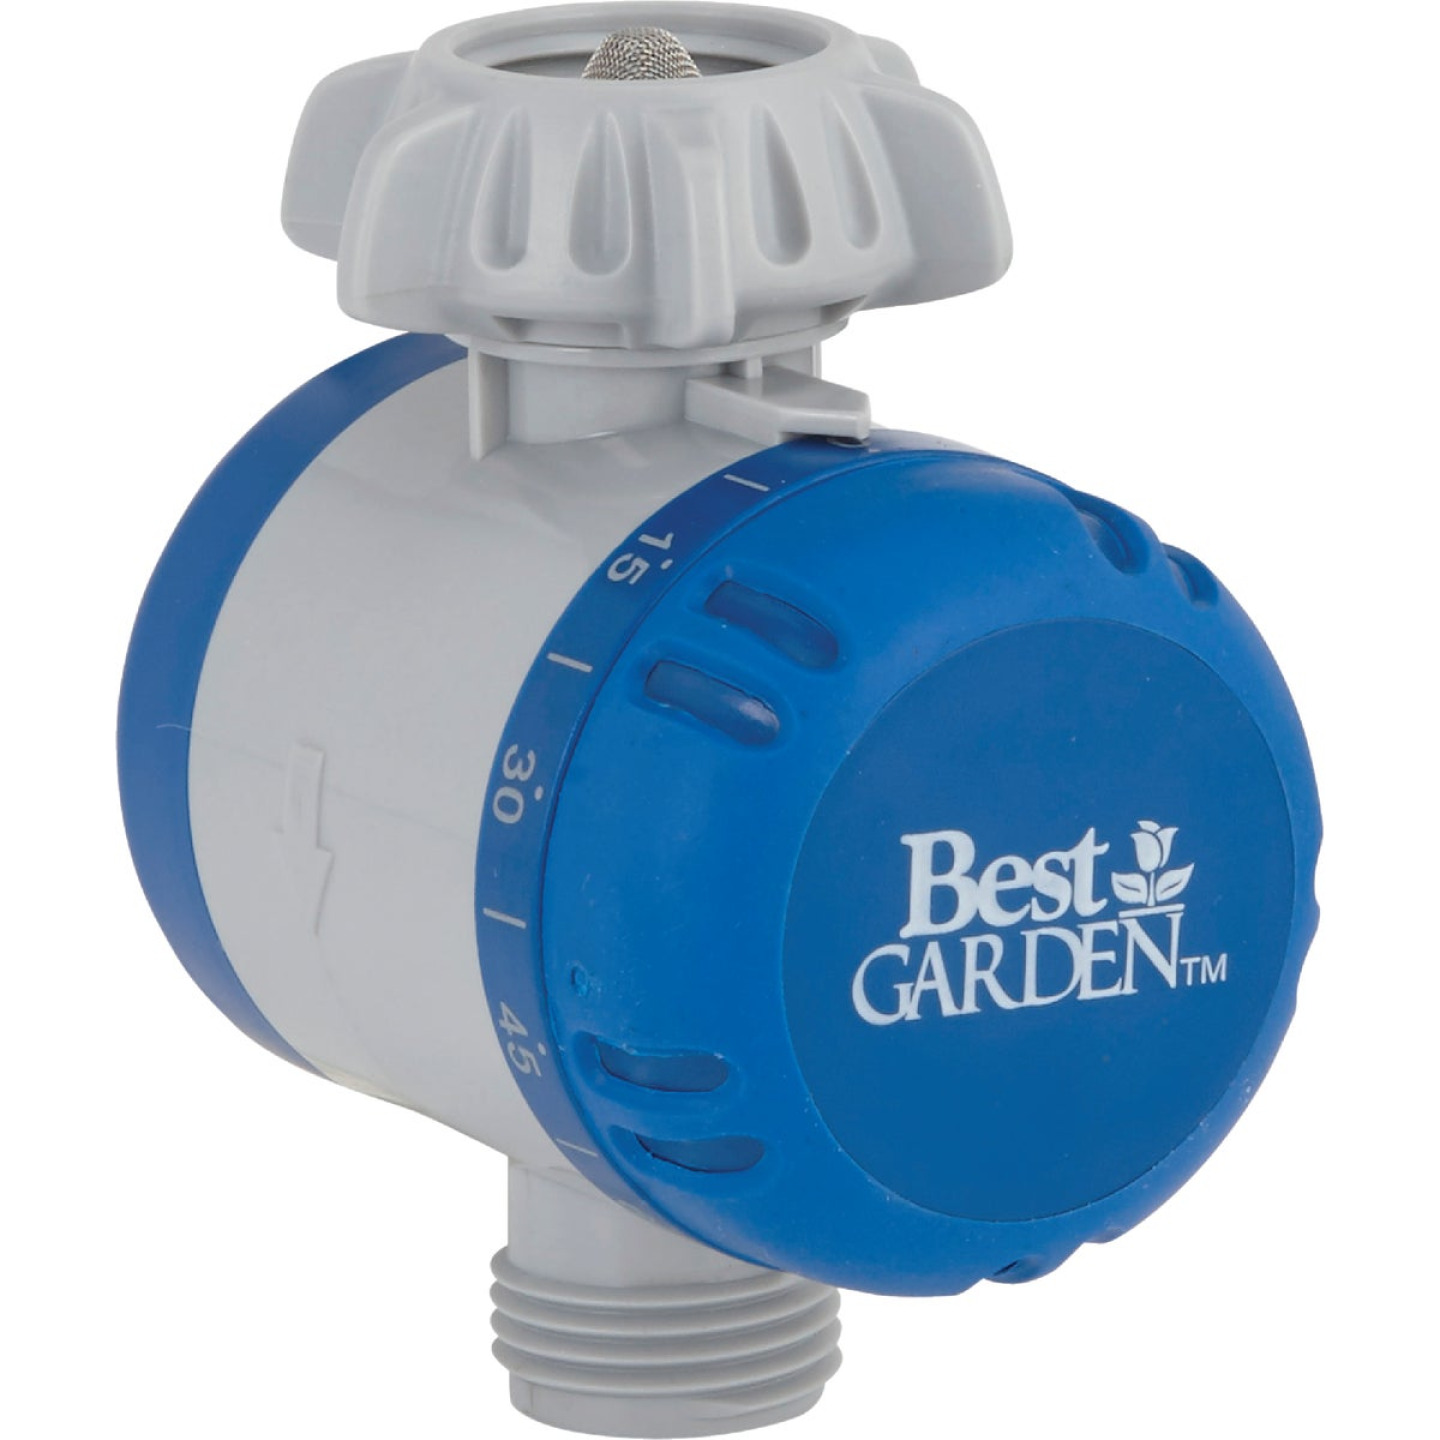 Best Garden Mechanical 1-Zone Water Timer Image 1